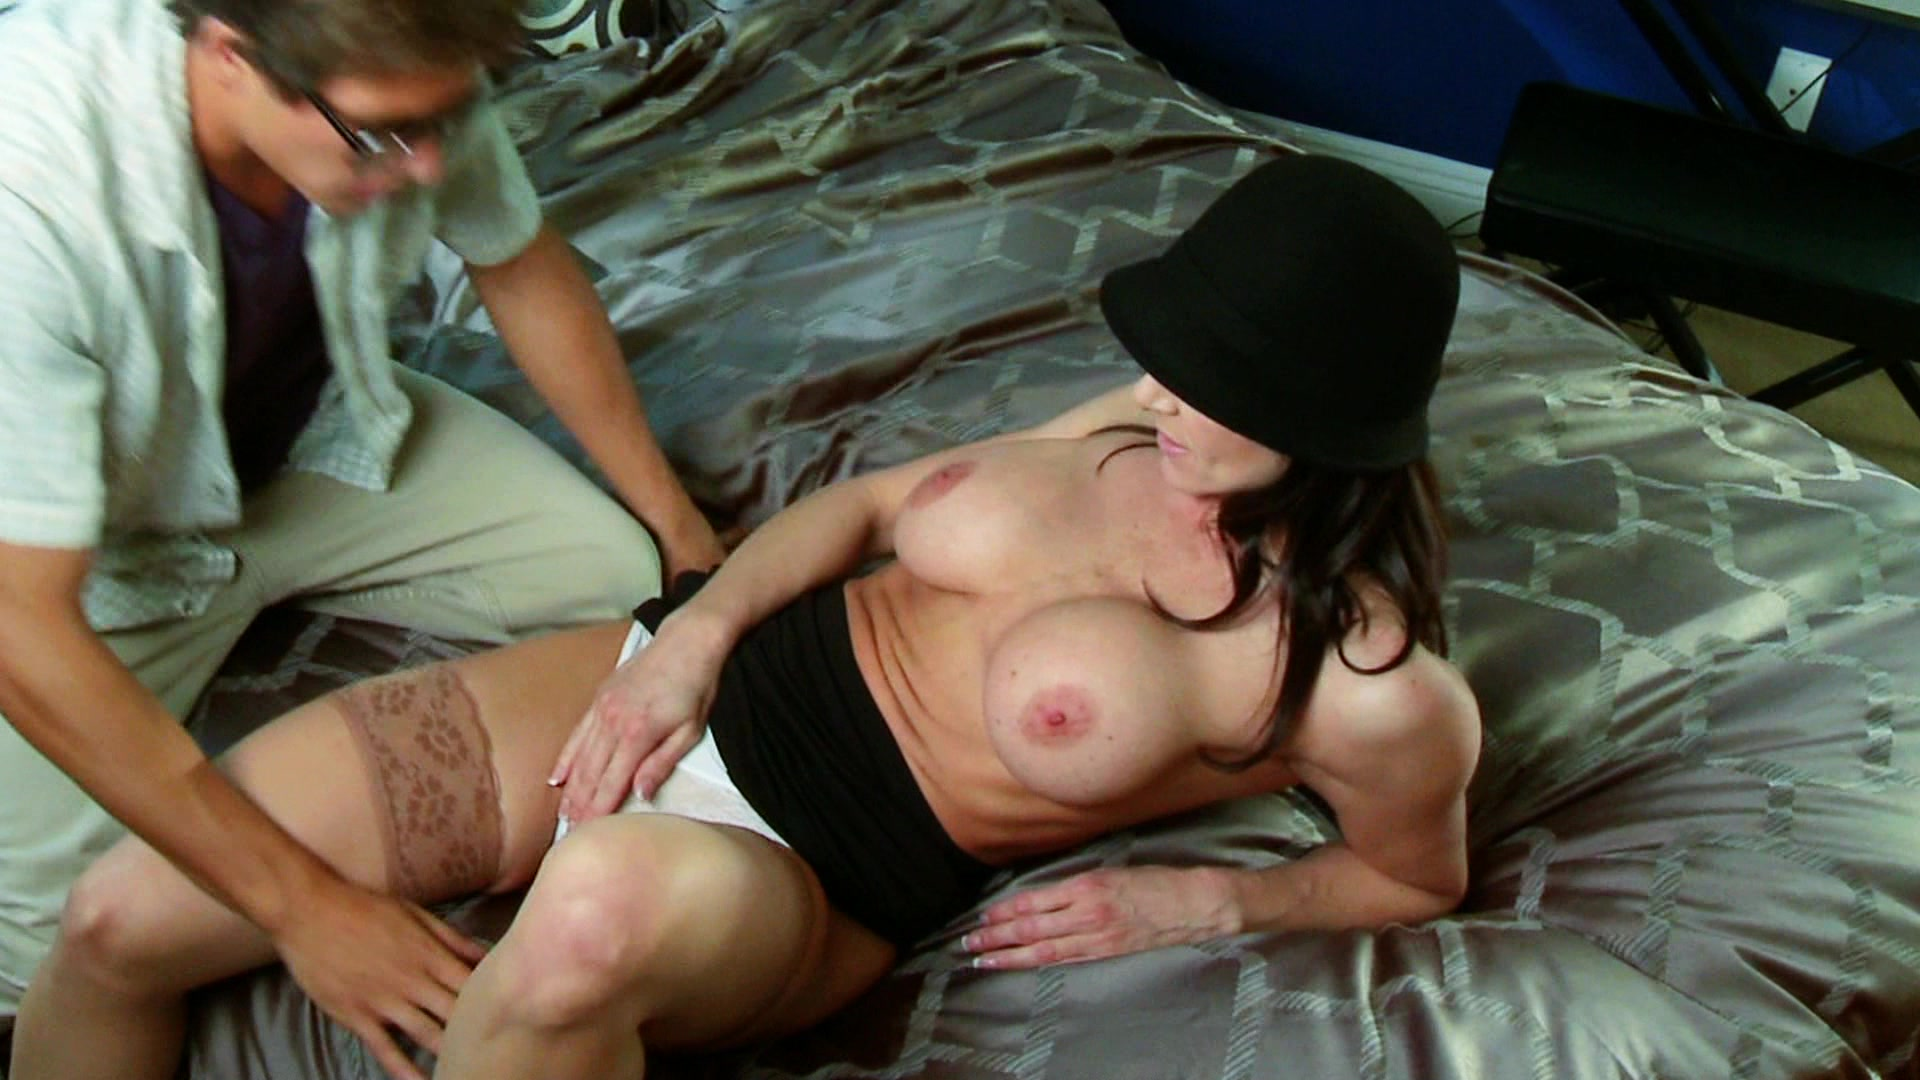 Free video preview image from naughty nannies